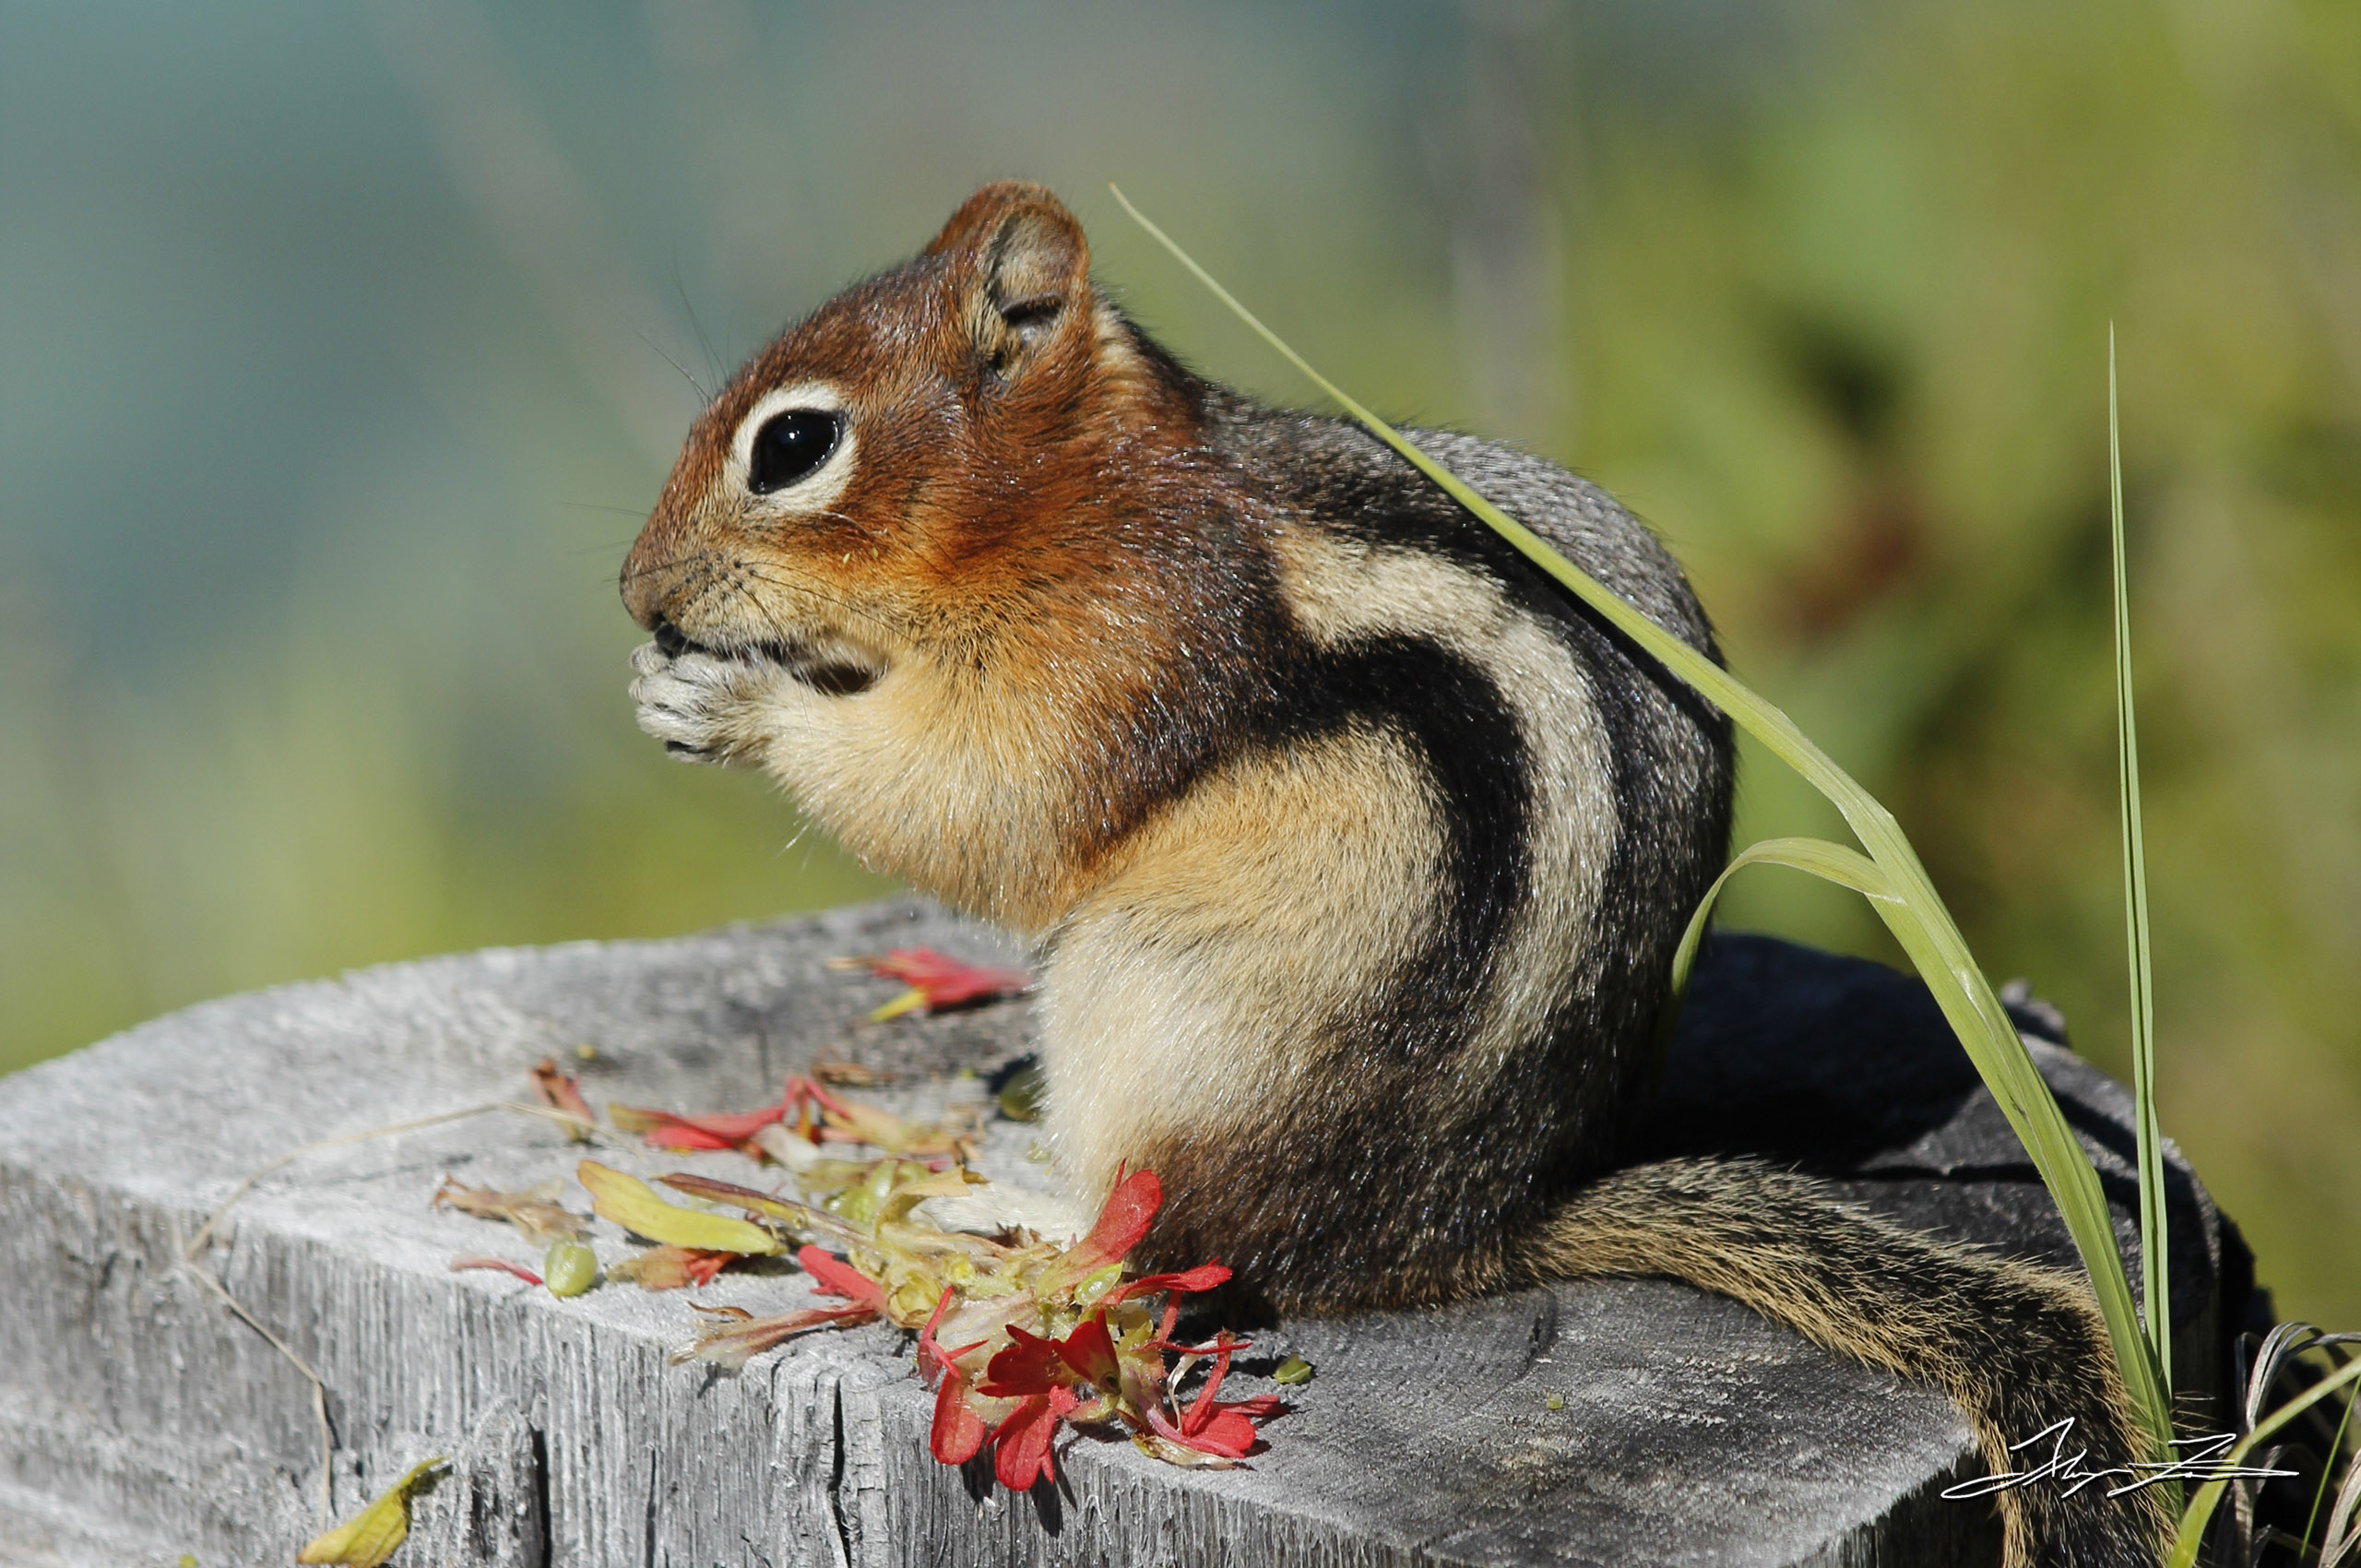 A chipmunk, captured by photographer and DPUB student Alayna Fairman